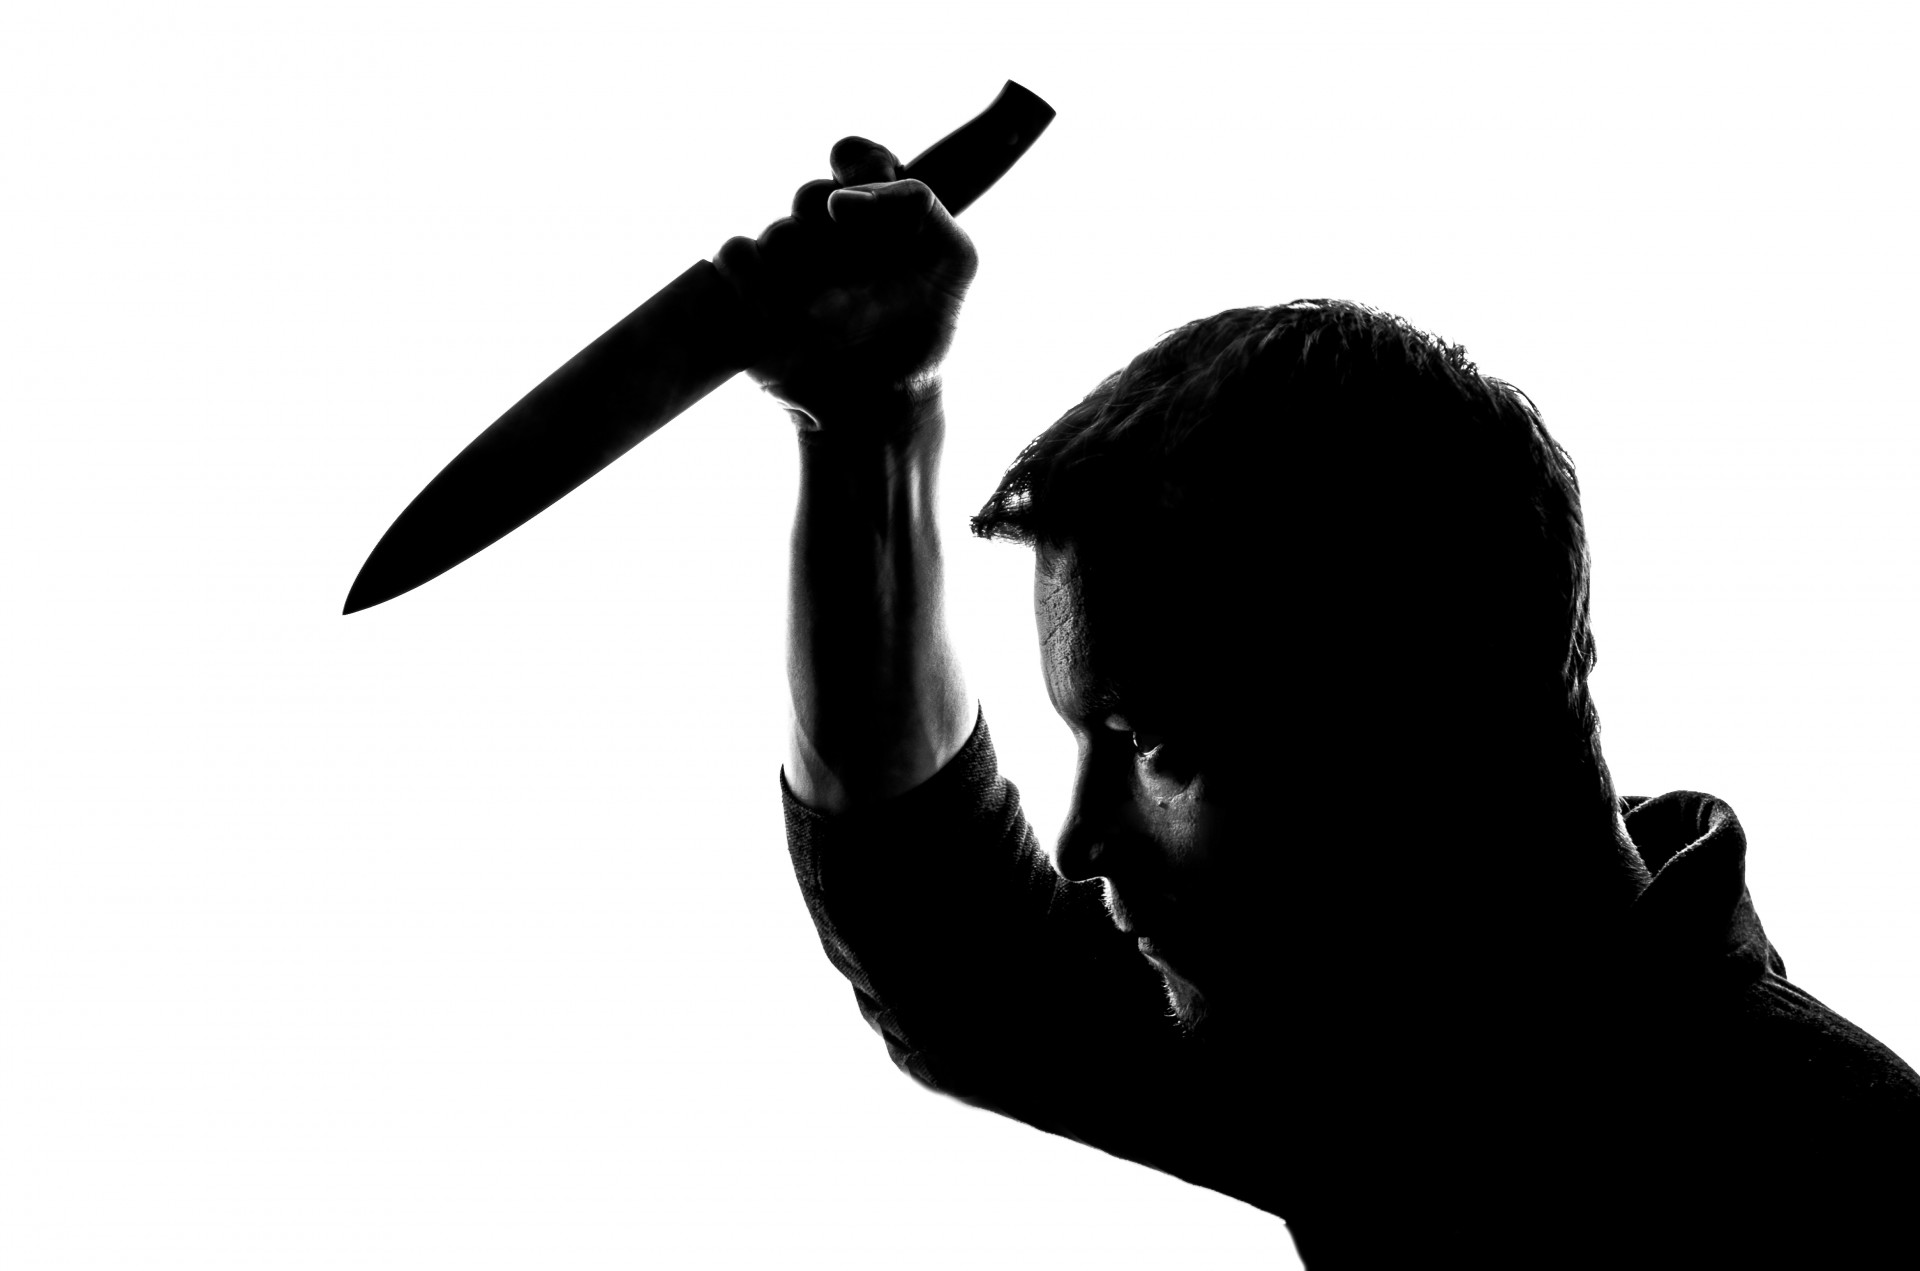 1920x1271 Filehorror Silhouette Of Man With Knife.jpg